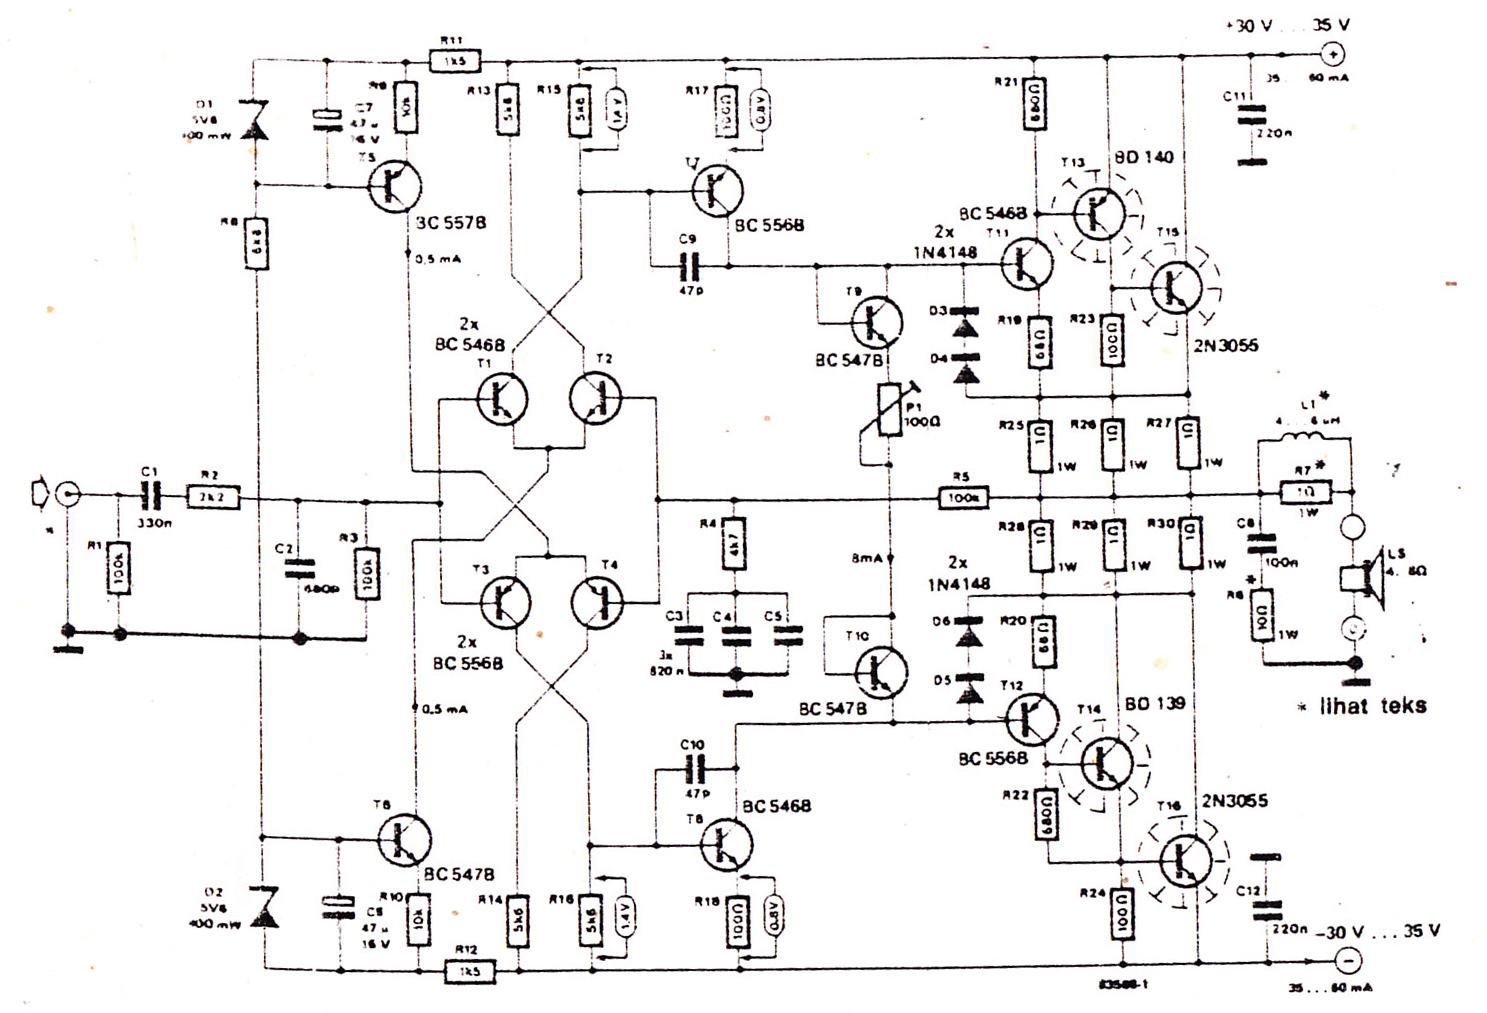 Power amplifier 200 watt using Transistor